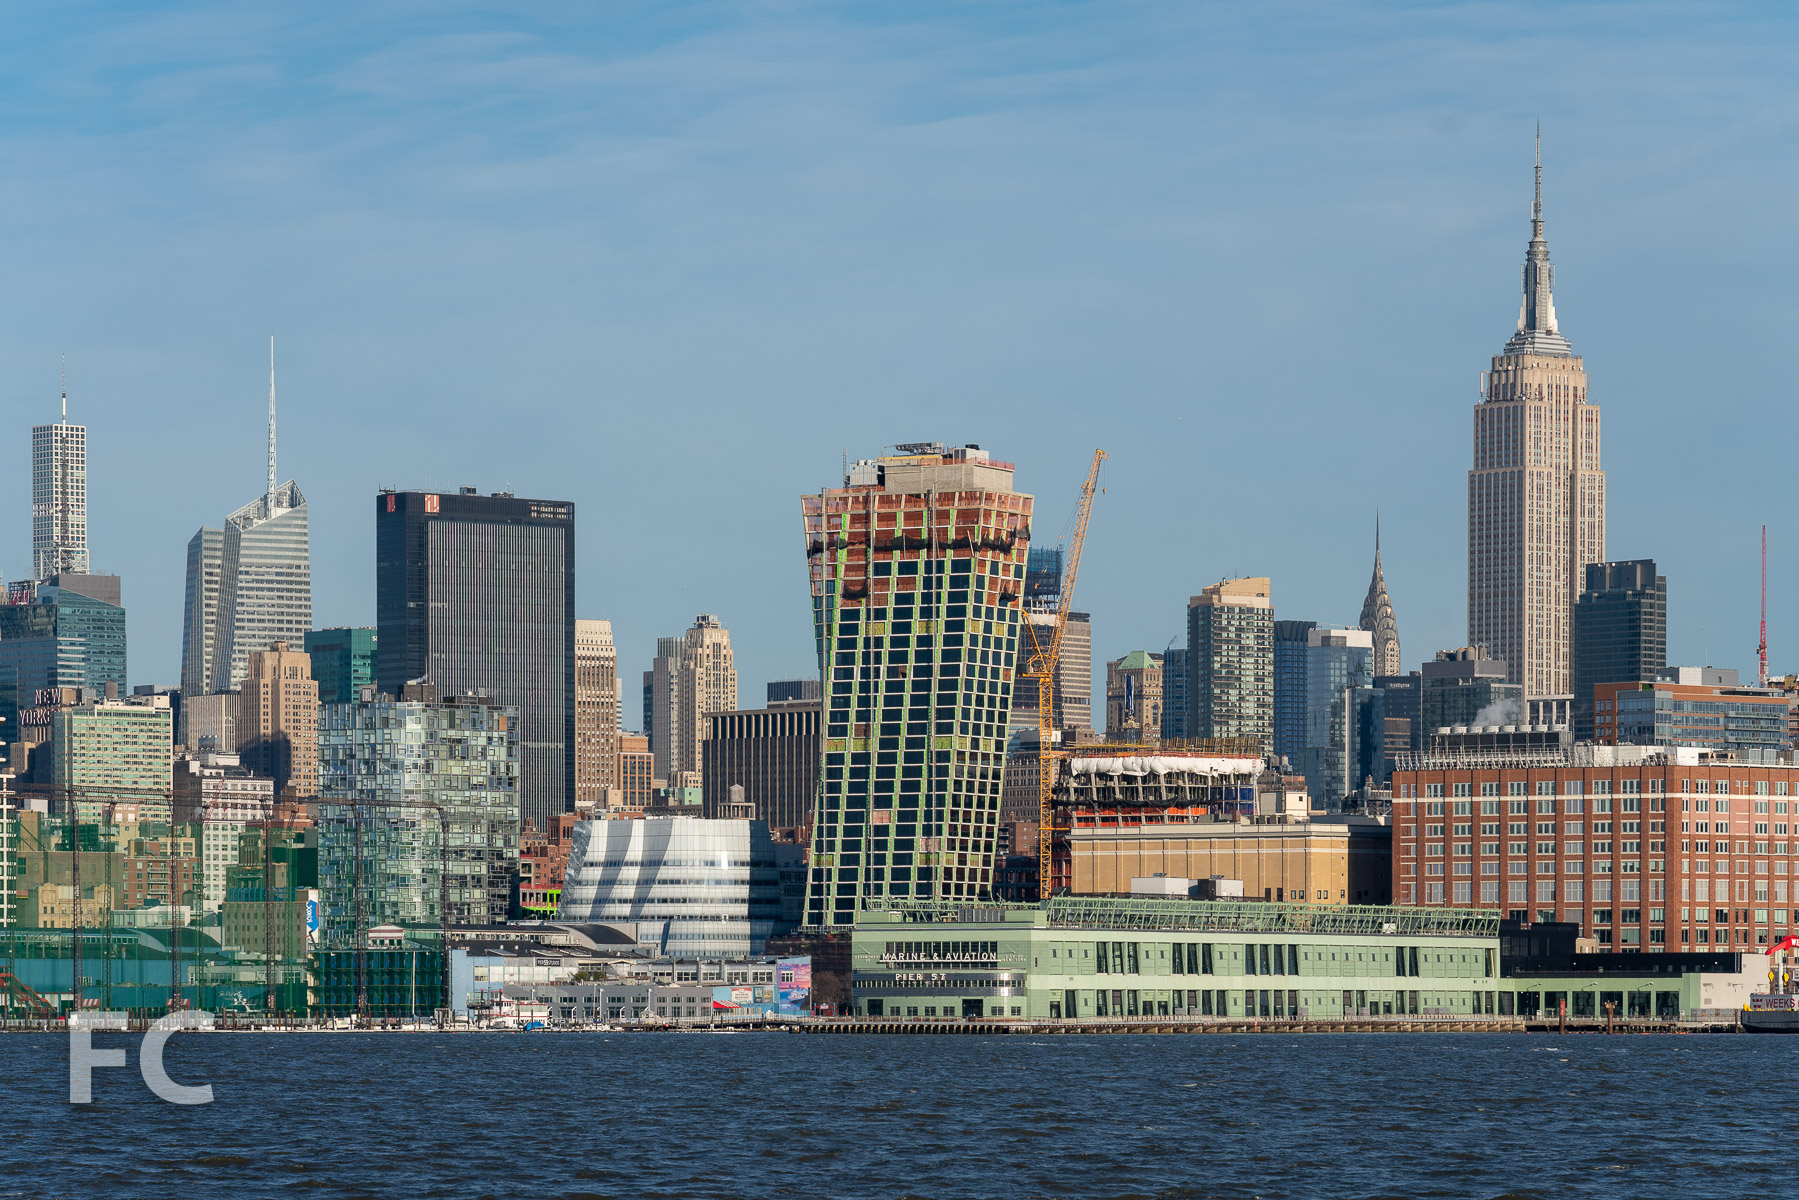 West facades from the Hudson River.